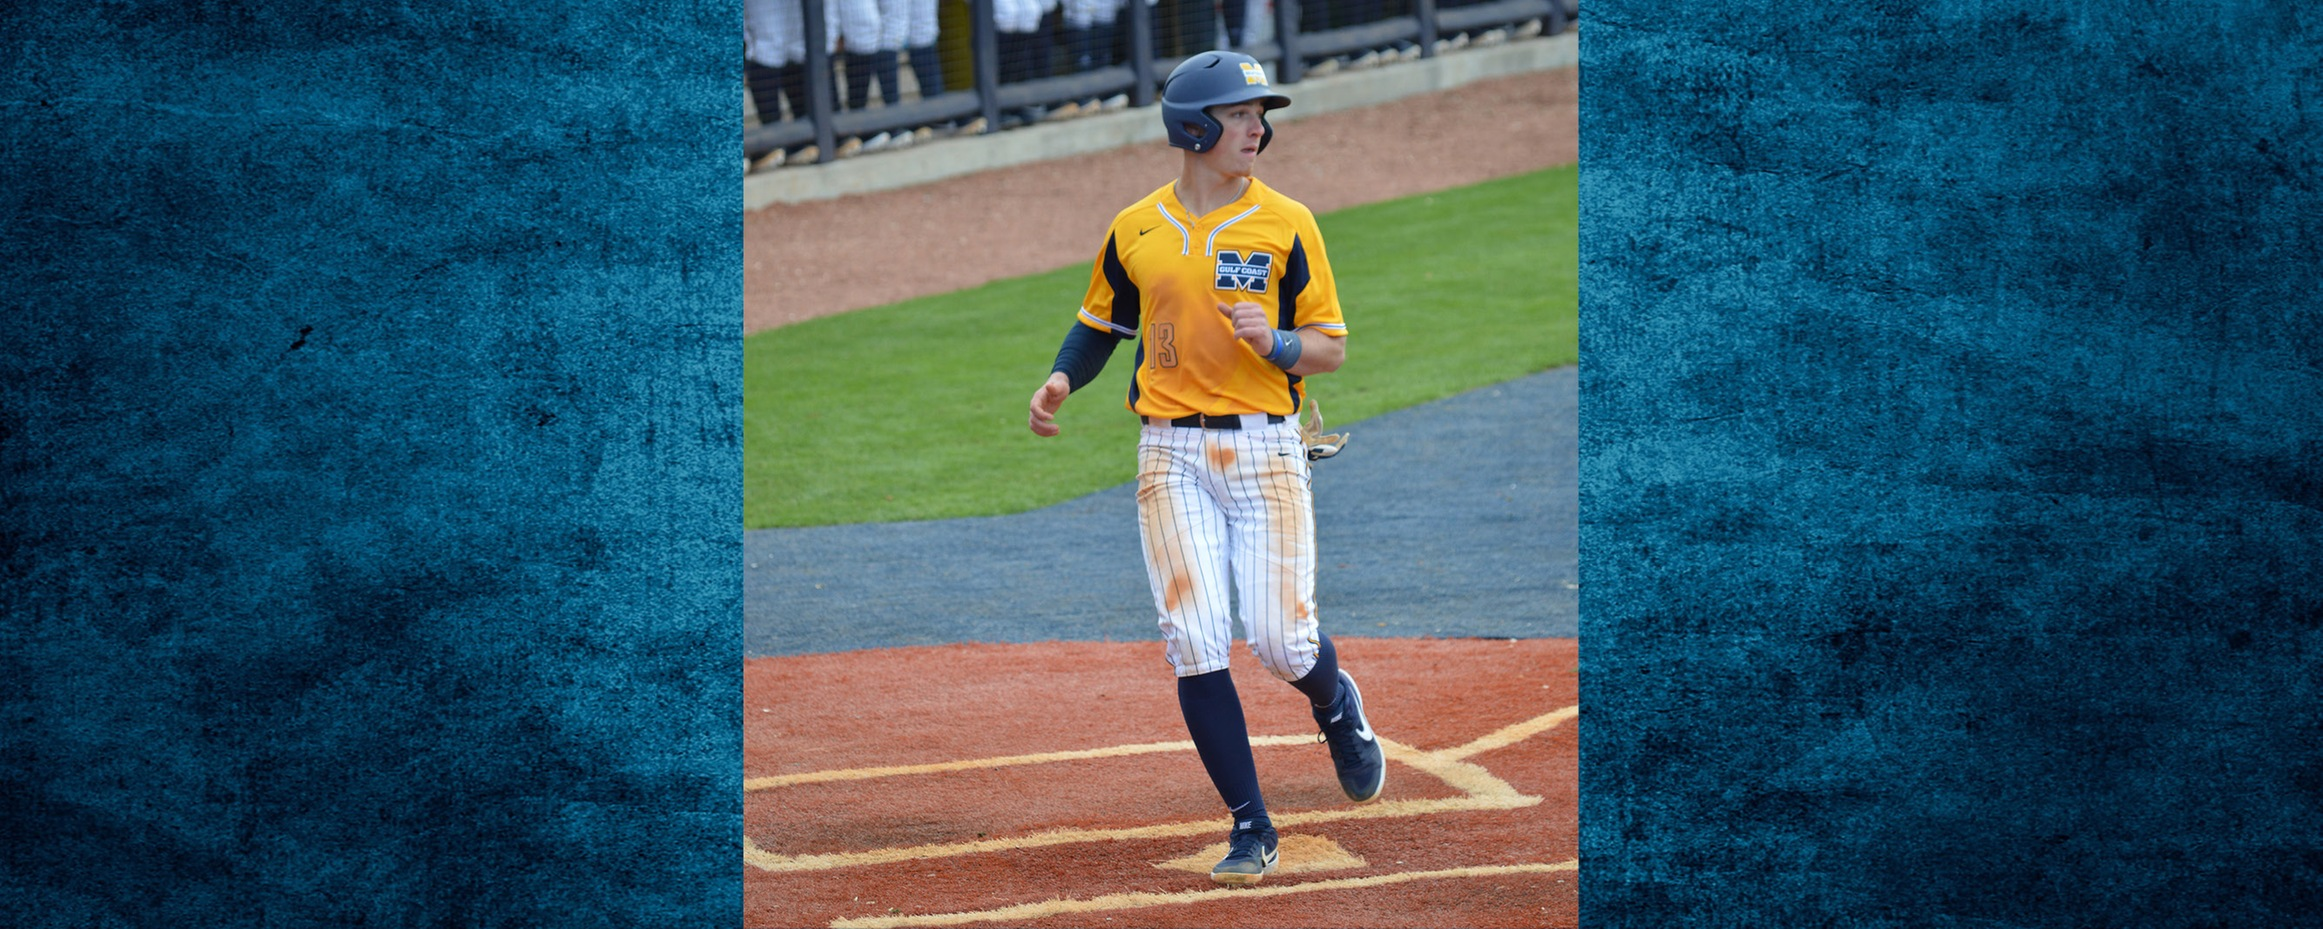 Big comeback sparks MGCCC sweep